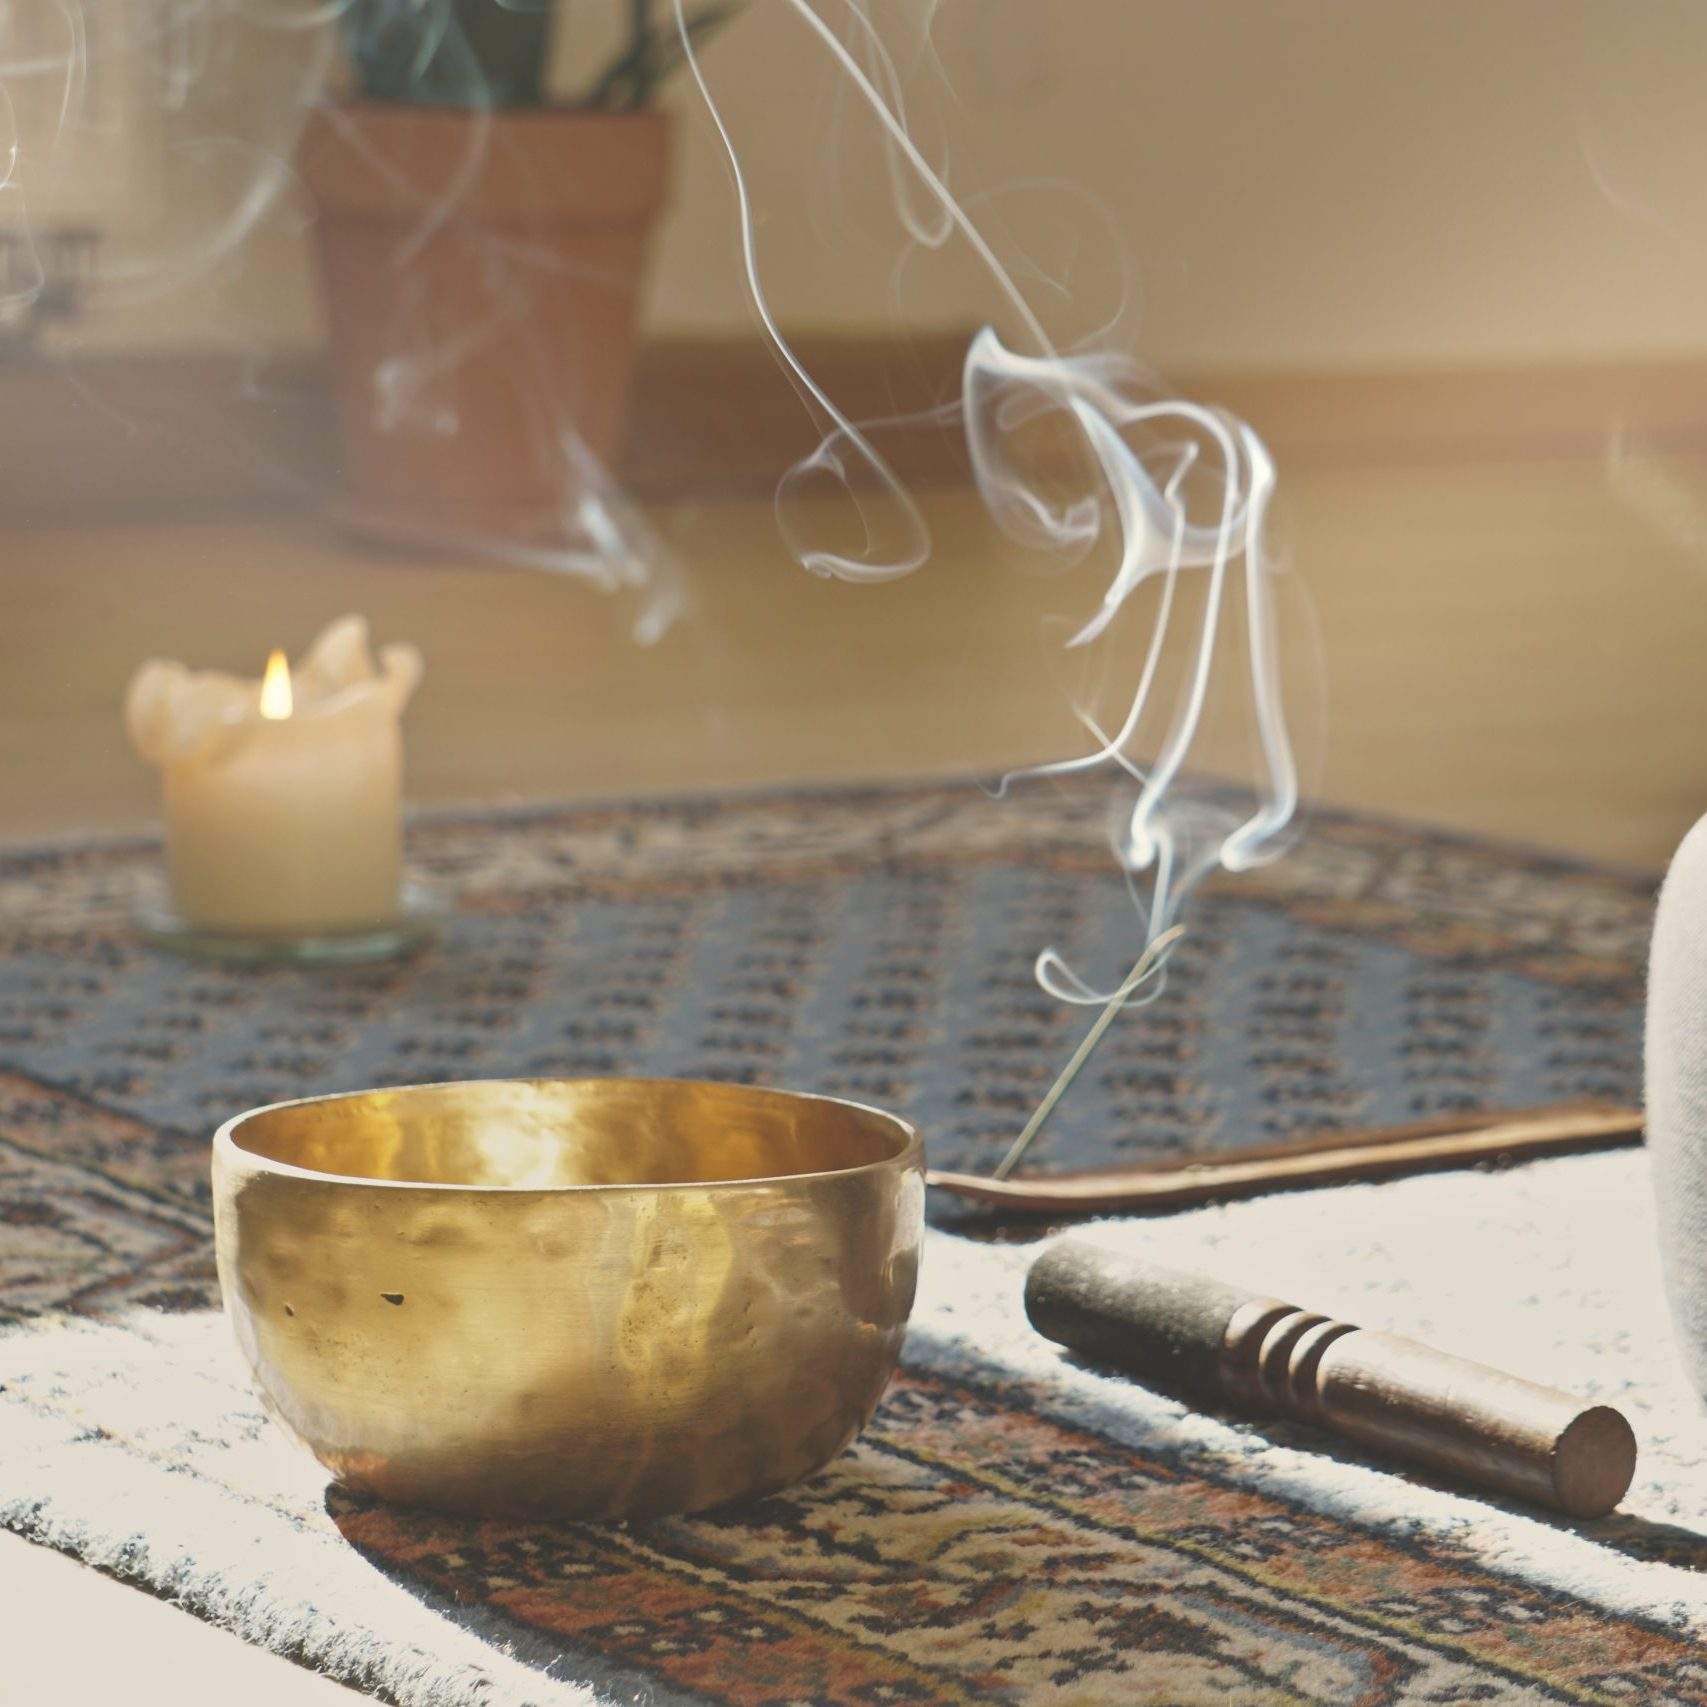 meditation room with singing bowl, incense stick, smoke, pillow and candle